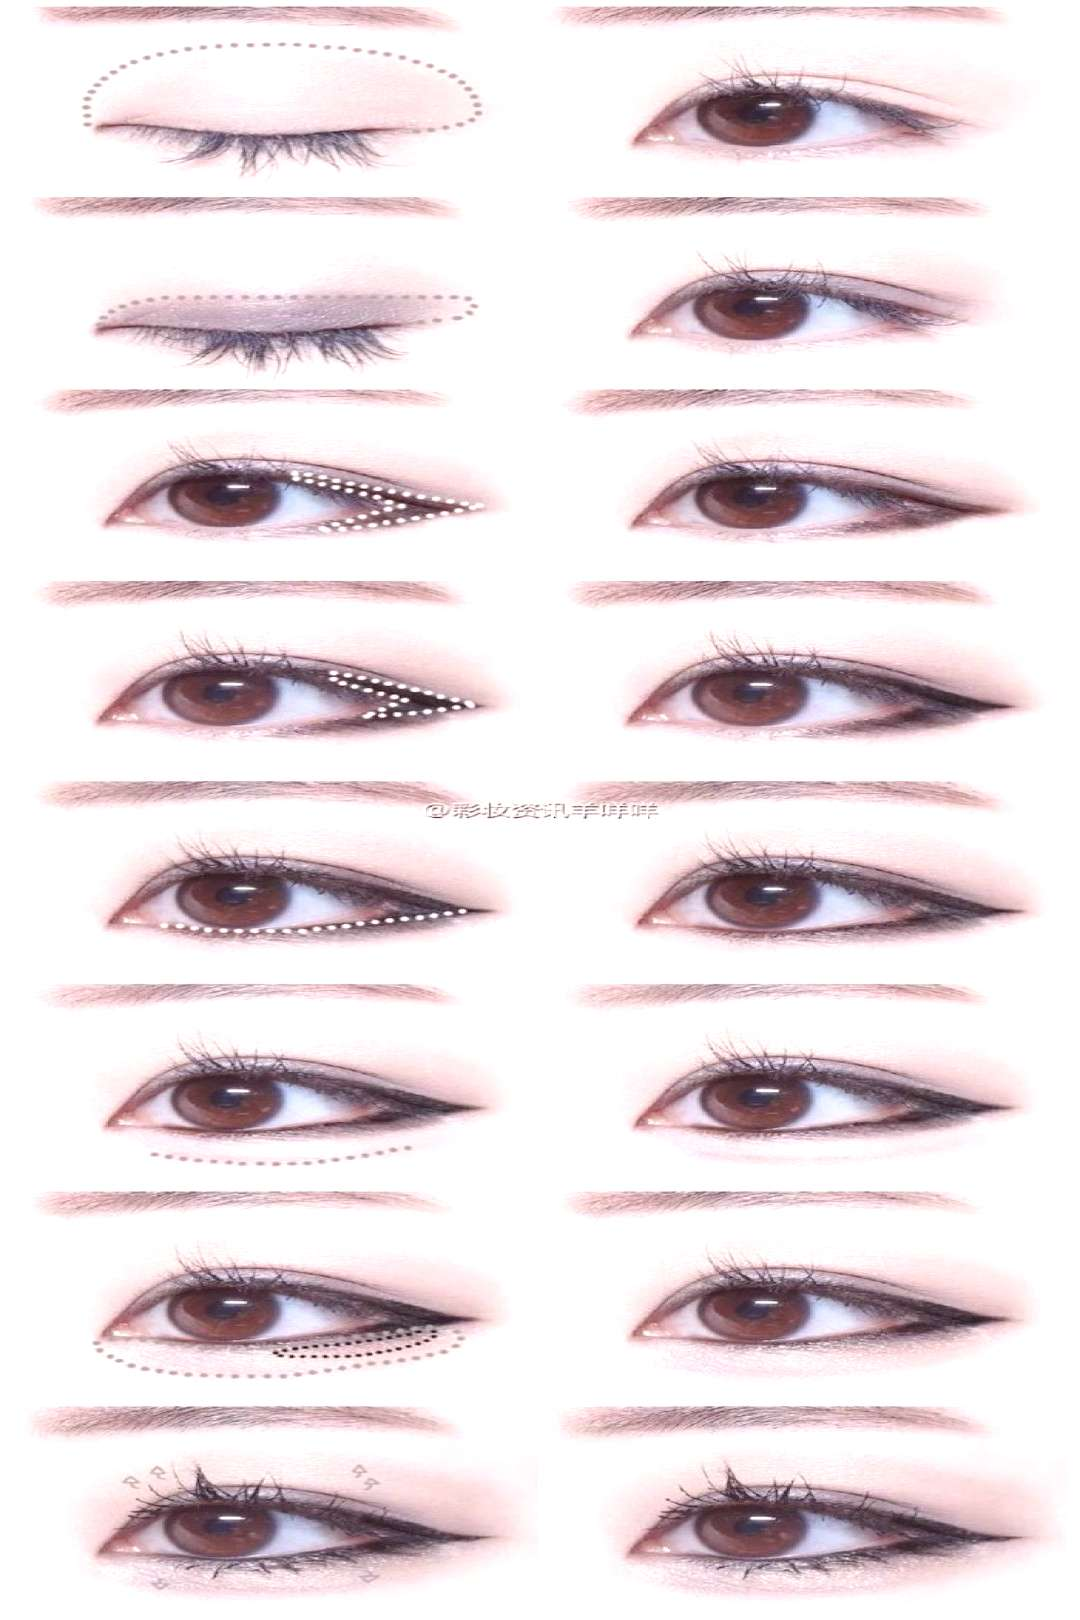 Korean makeup tutorials - There is certainly help for dark circles within the eyes. Work with a lig